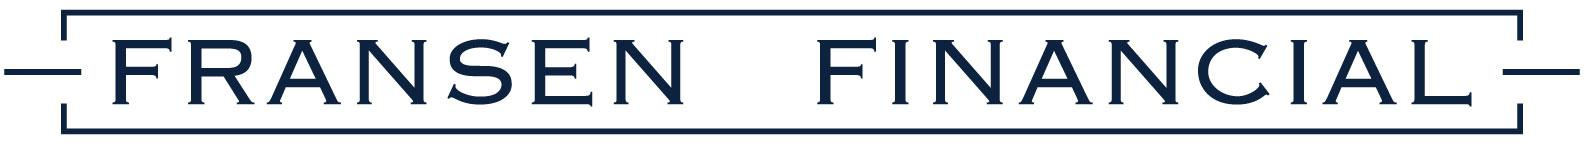 Fransen Financial Inc.